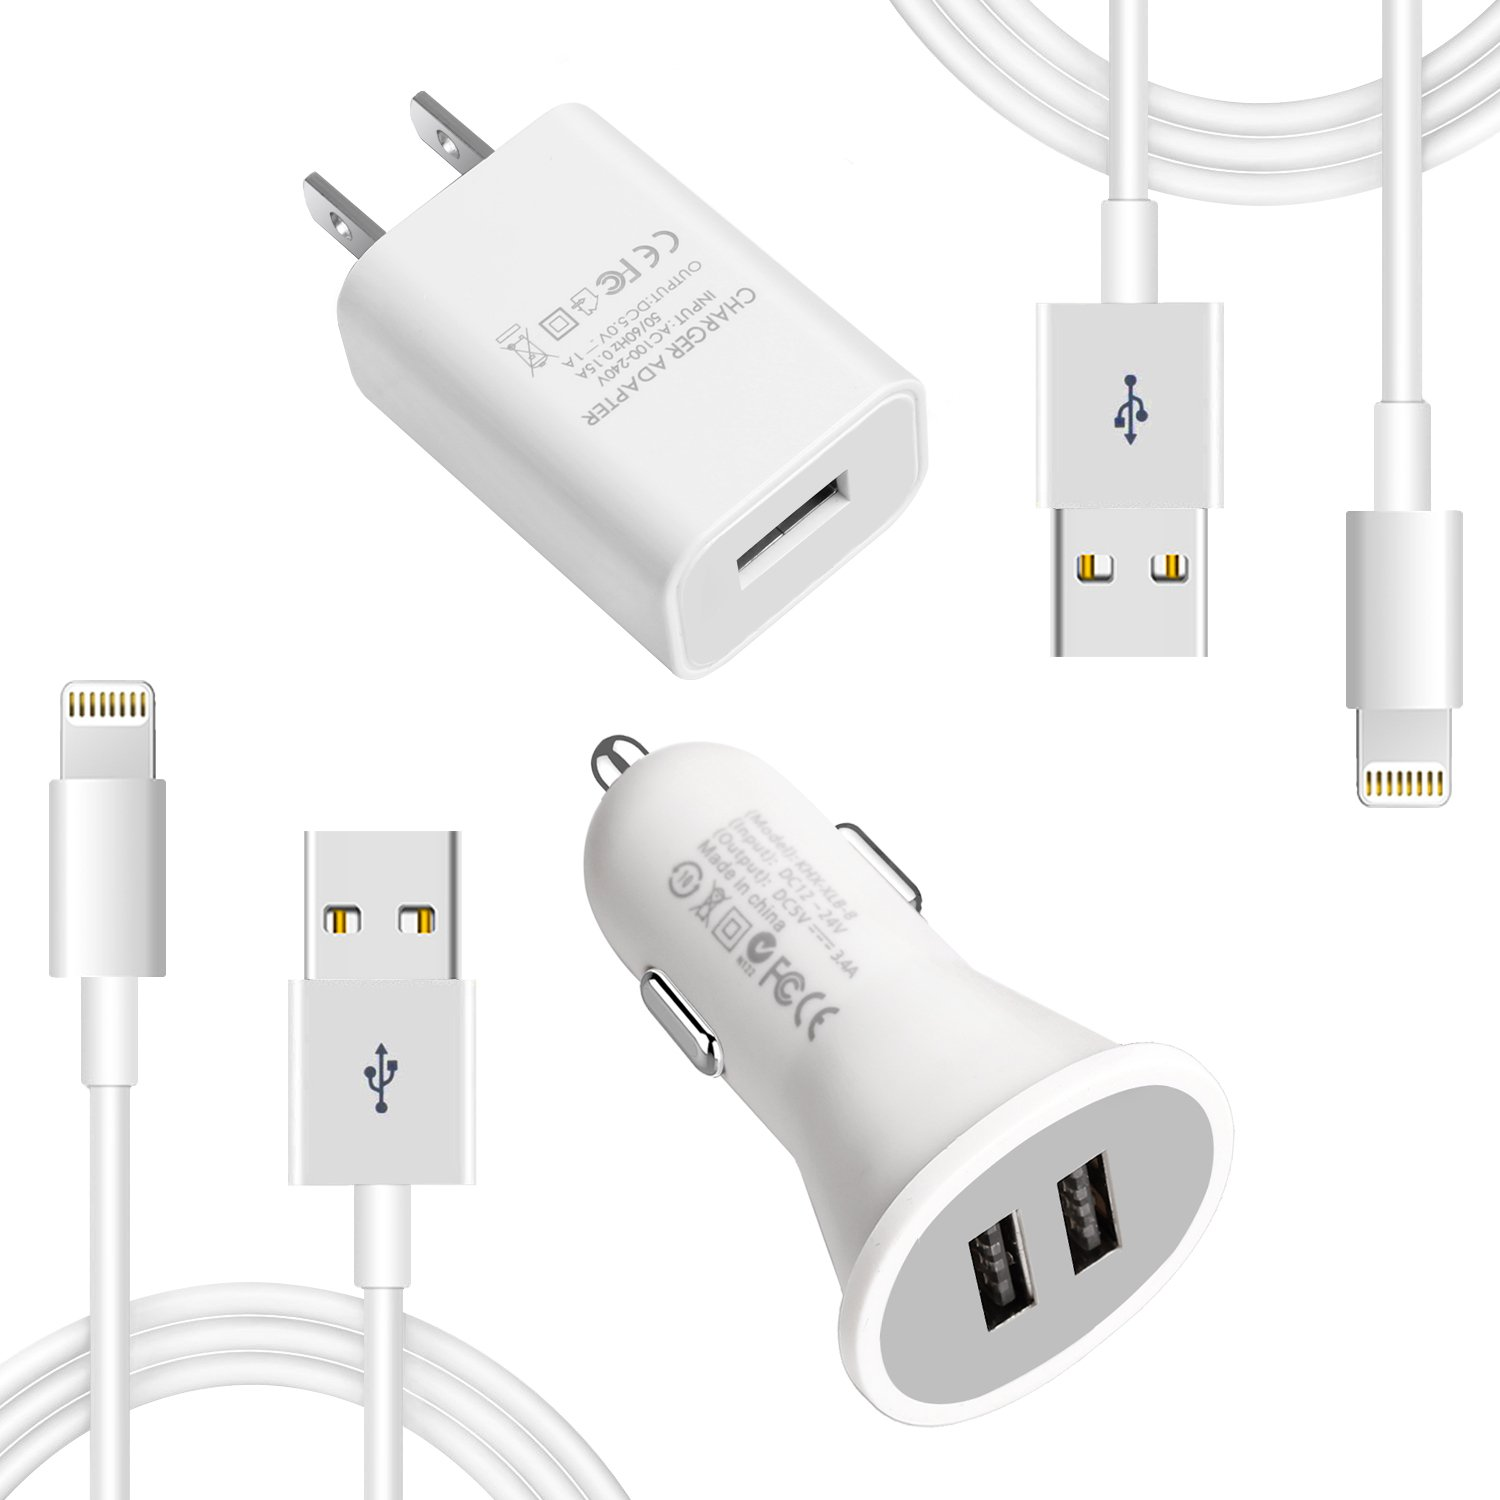 Lightning Cable iPhone Charger for iPhone 8, iPad Charger Lightning Cable Kit for iPhone X /8 / 7 / 6s / 5s /Plus, iPad Pro / Air 2 / Mini and More (Combo Set (iPhone Charger Kit))